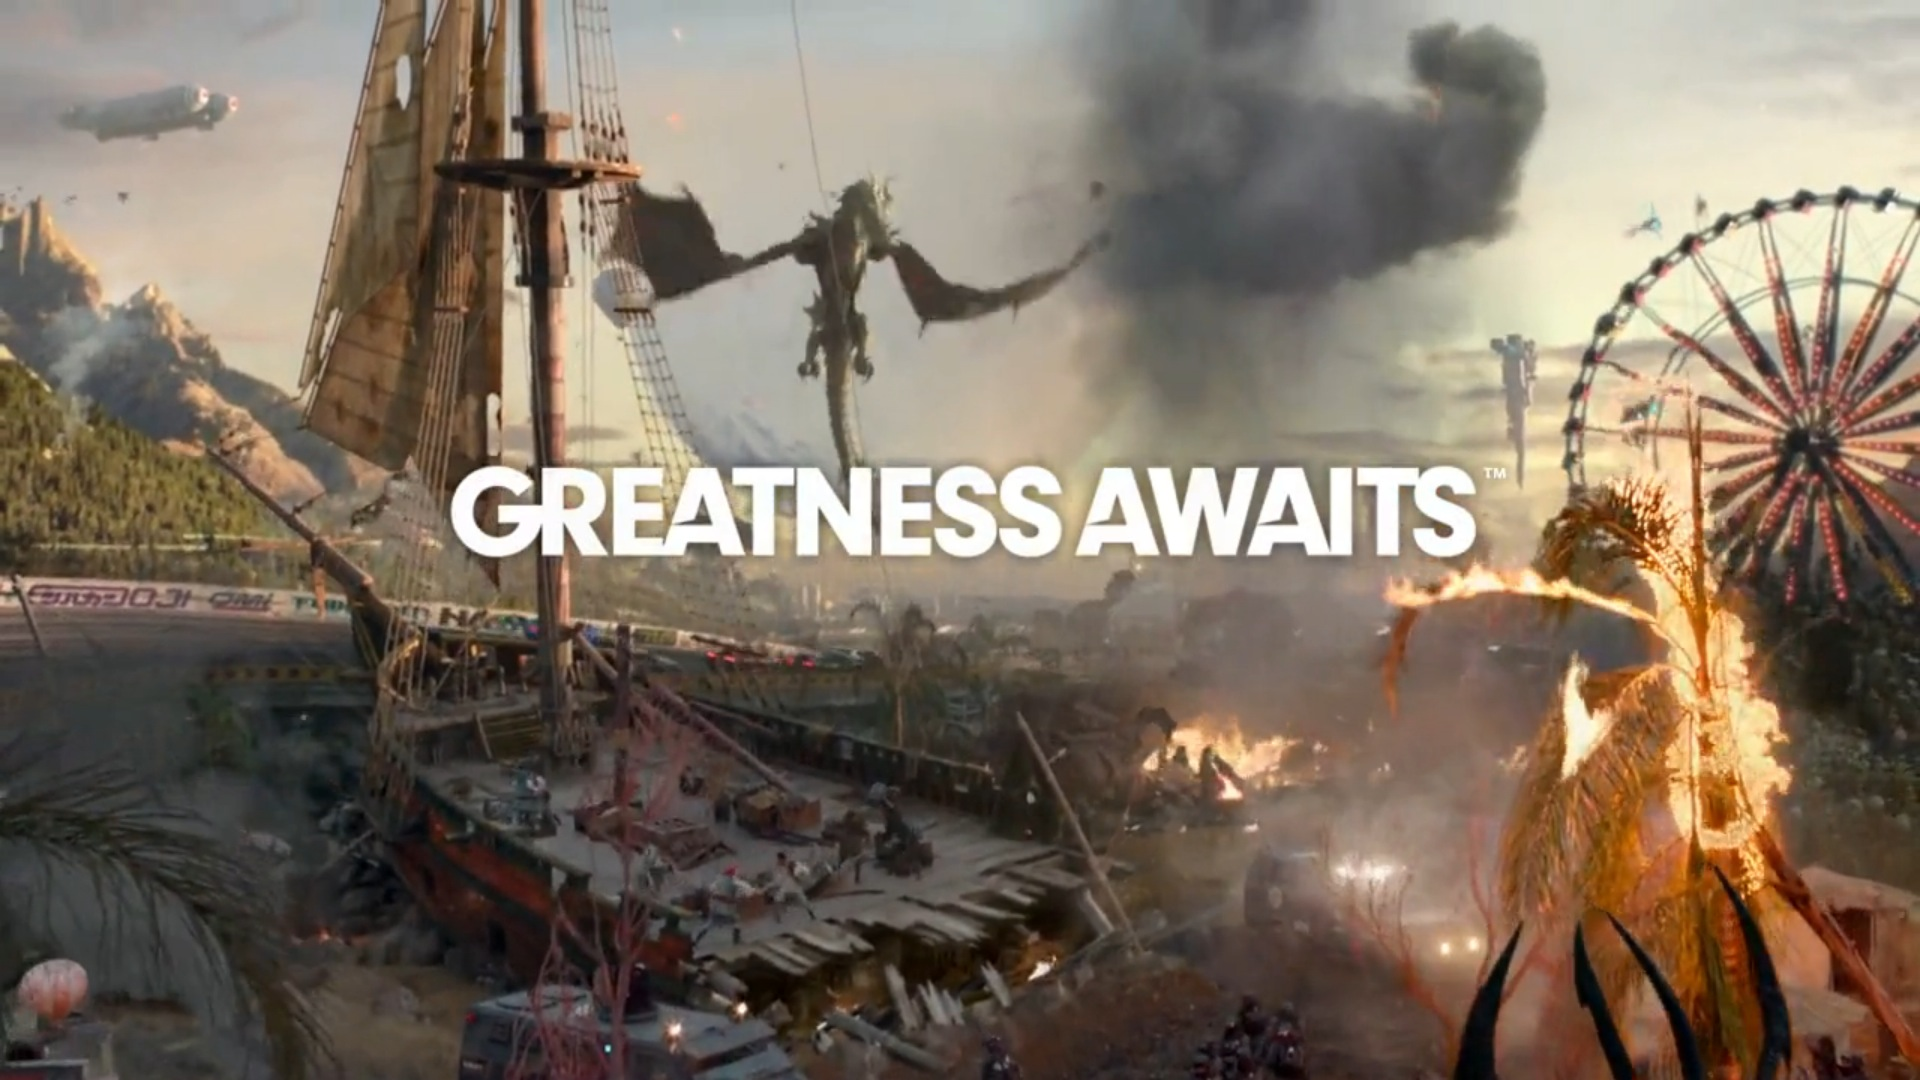 Greatness Awaits Wallpaper